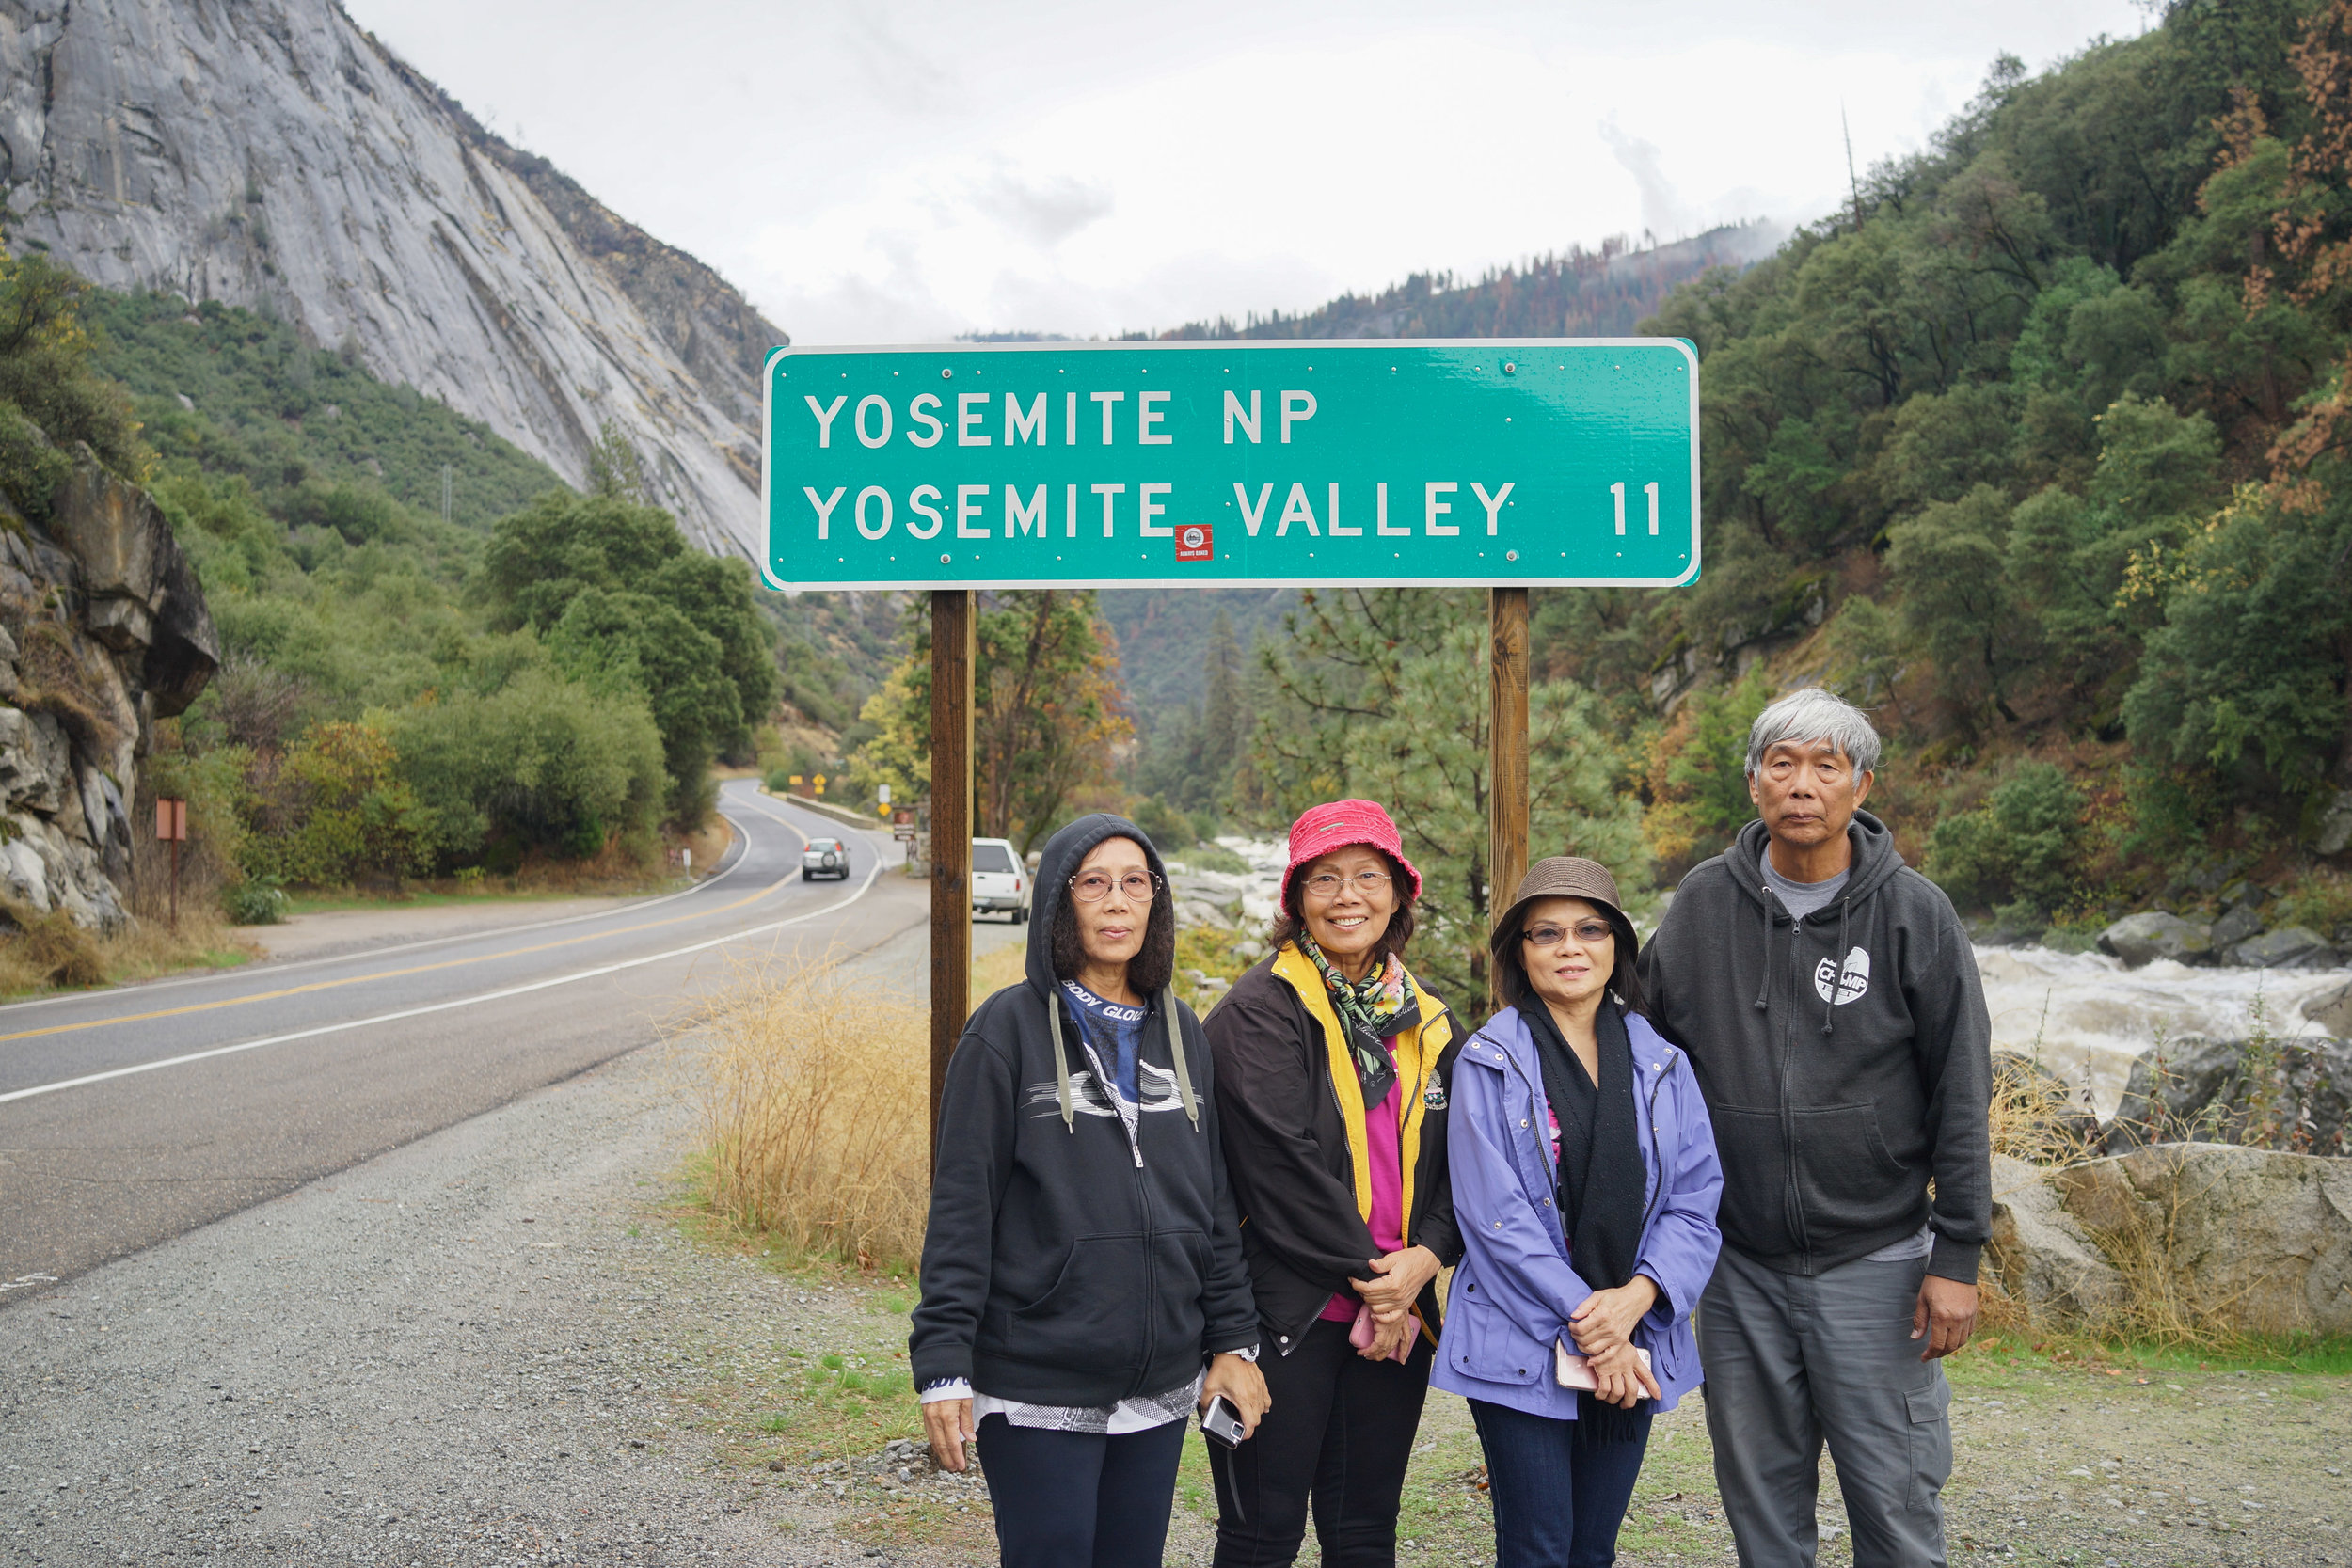 We are heading out from Yosemite.